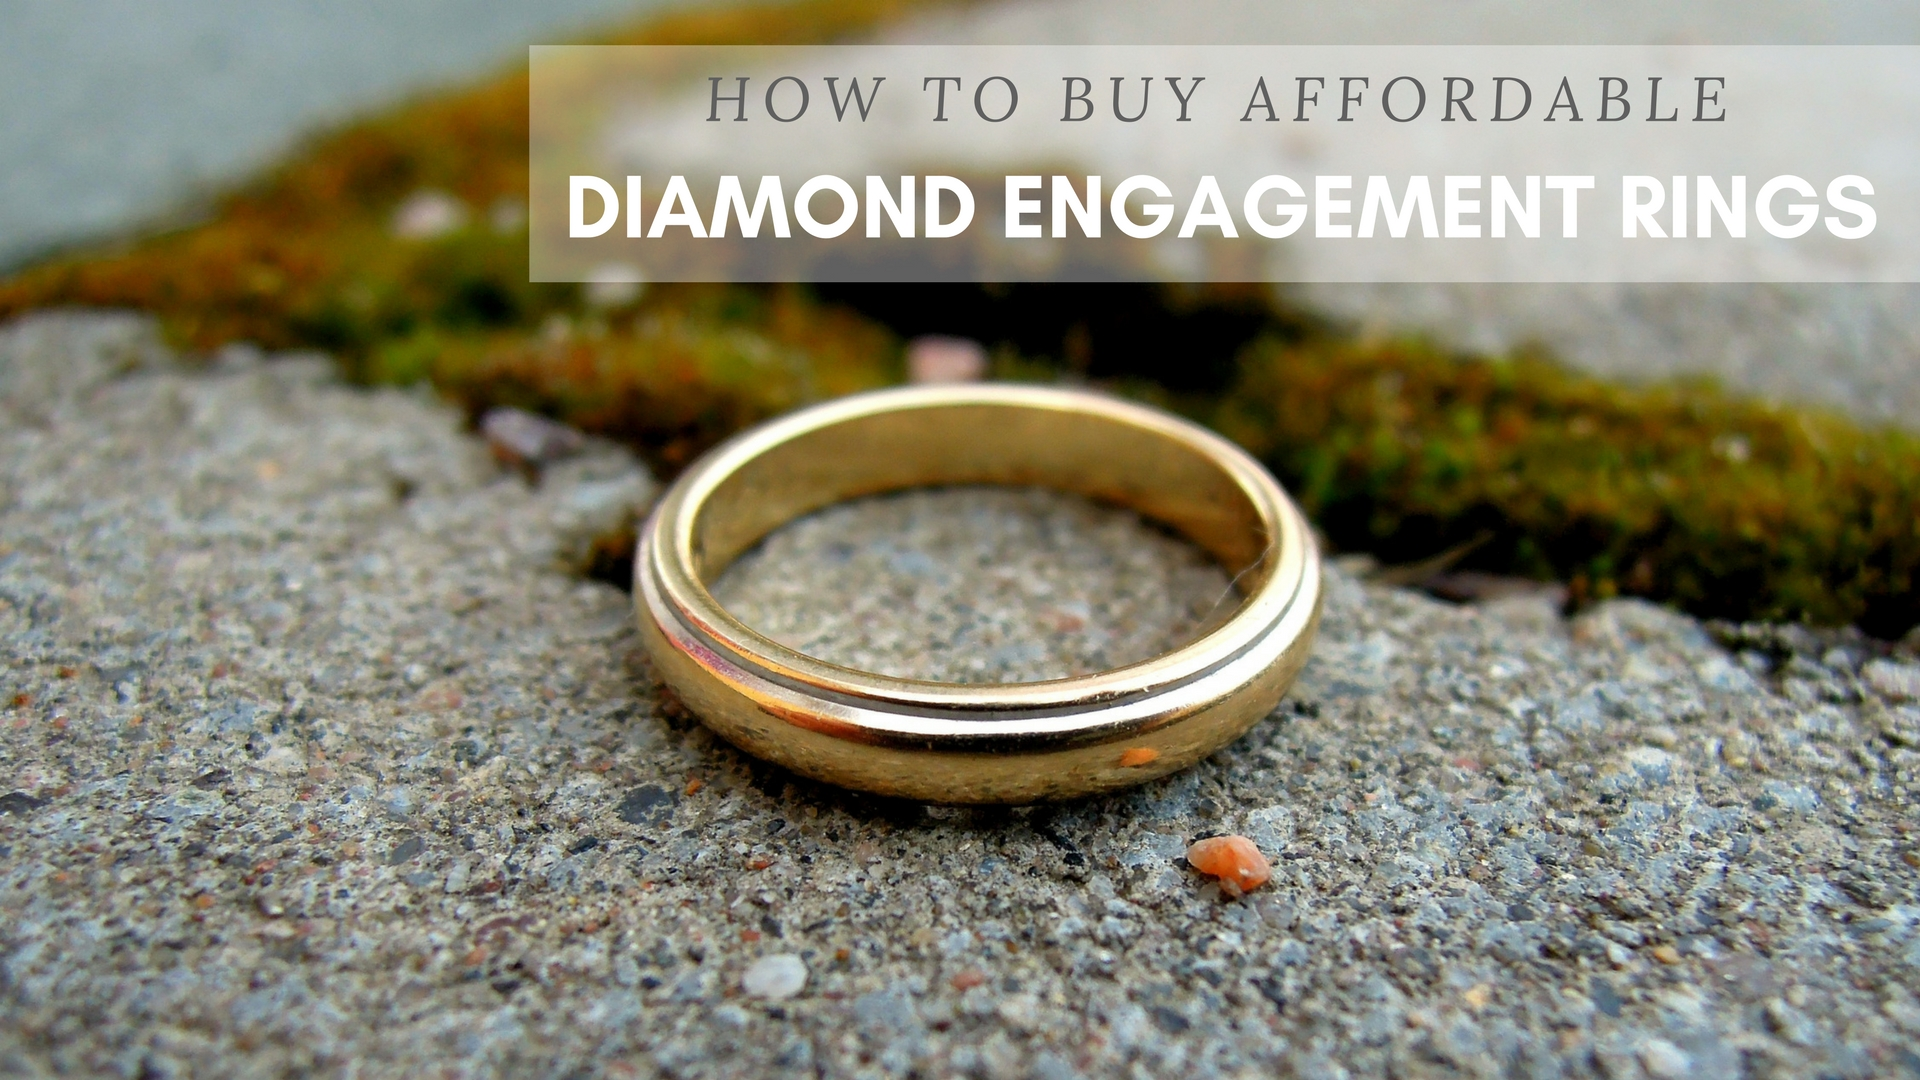 How To Buy Affordable Diamond Engagement Rings - dazzlingRock